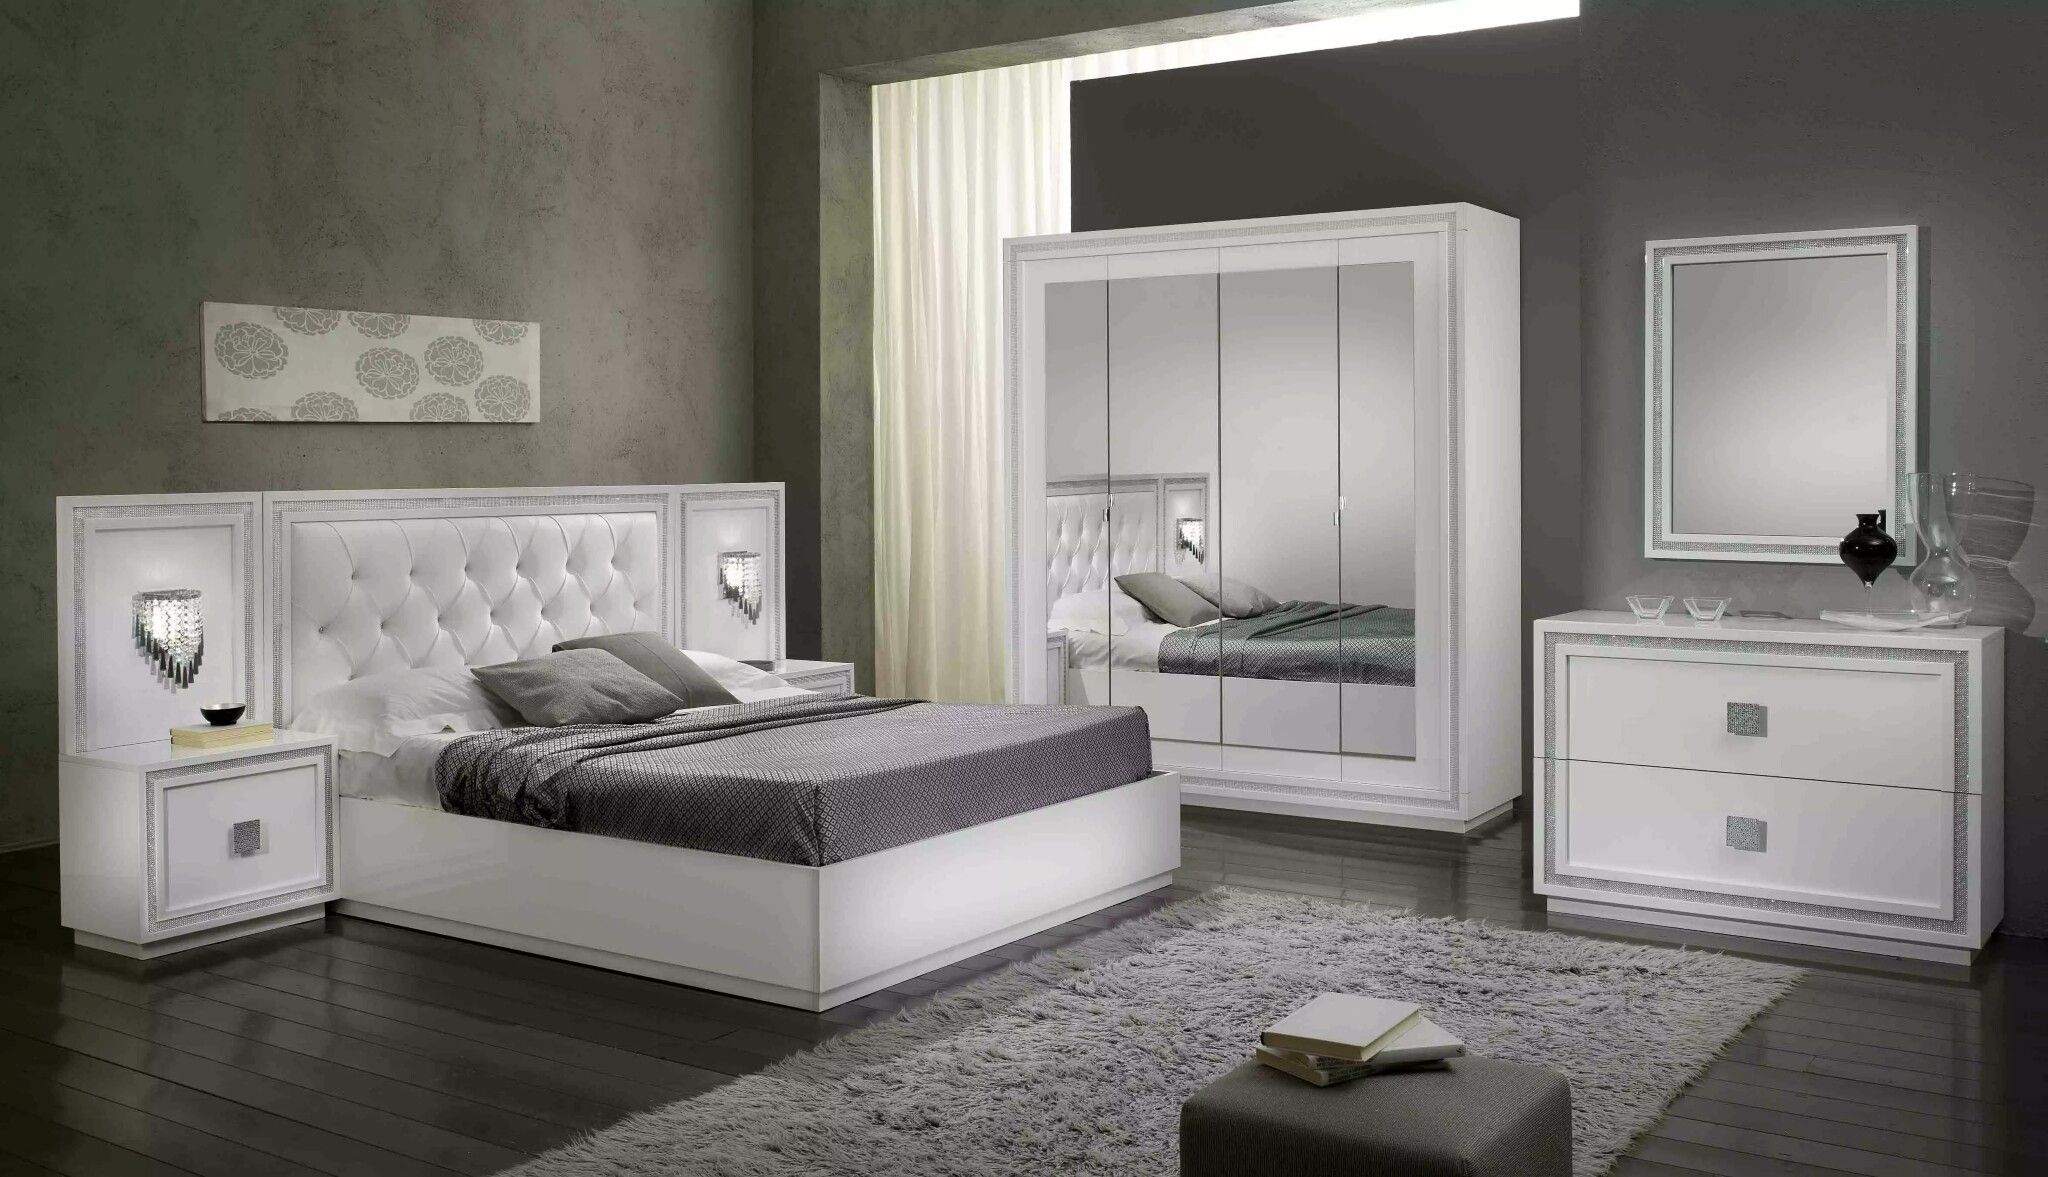 Explore Bedroom Sets, Bedrooms, And More!